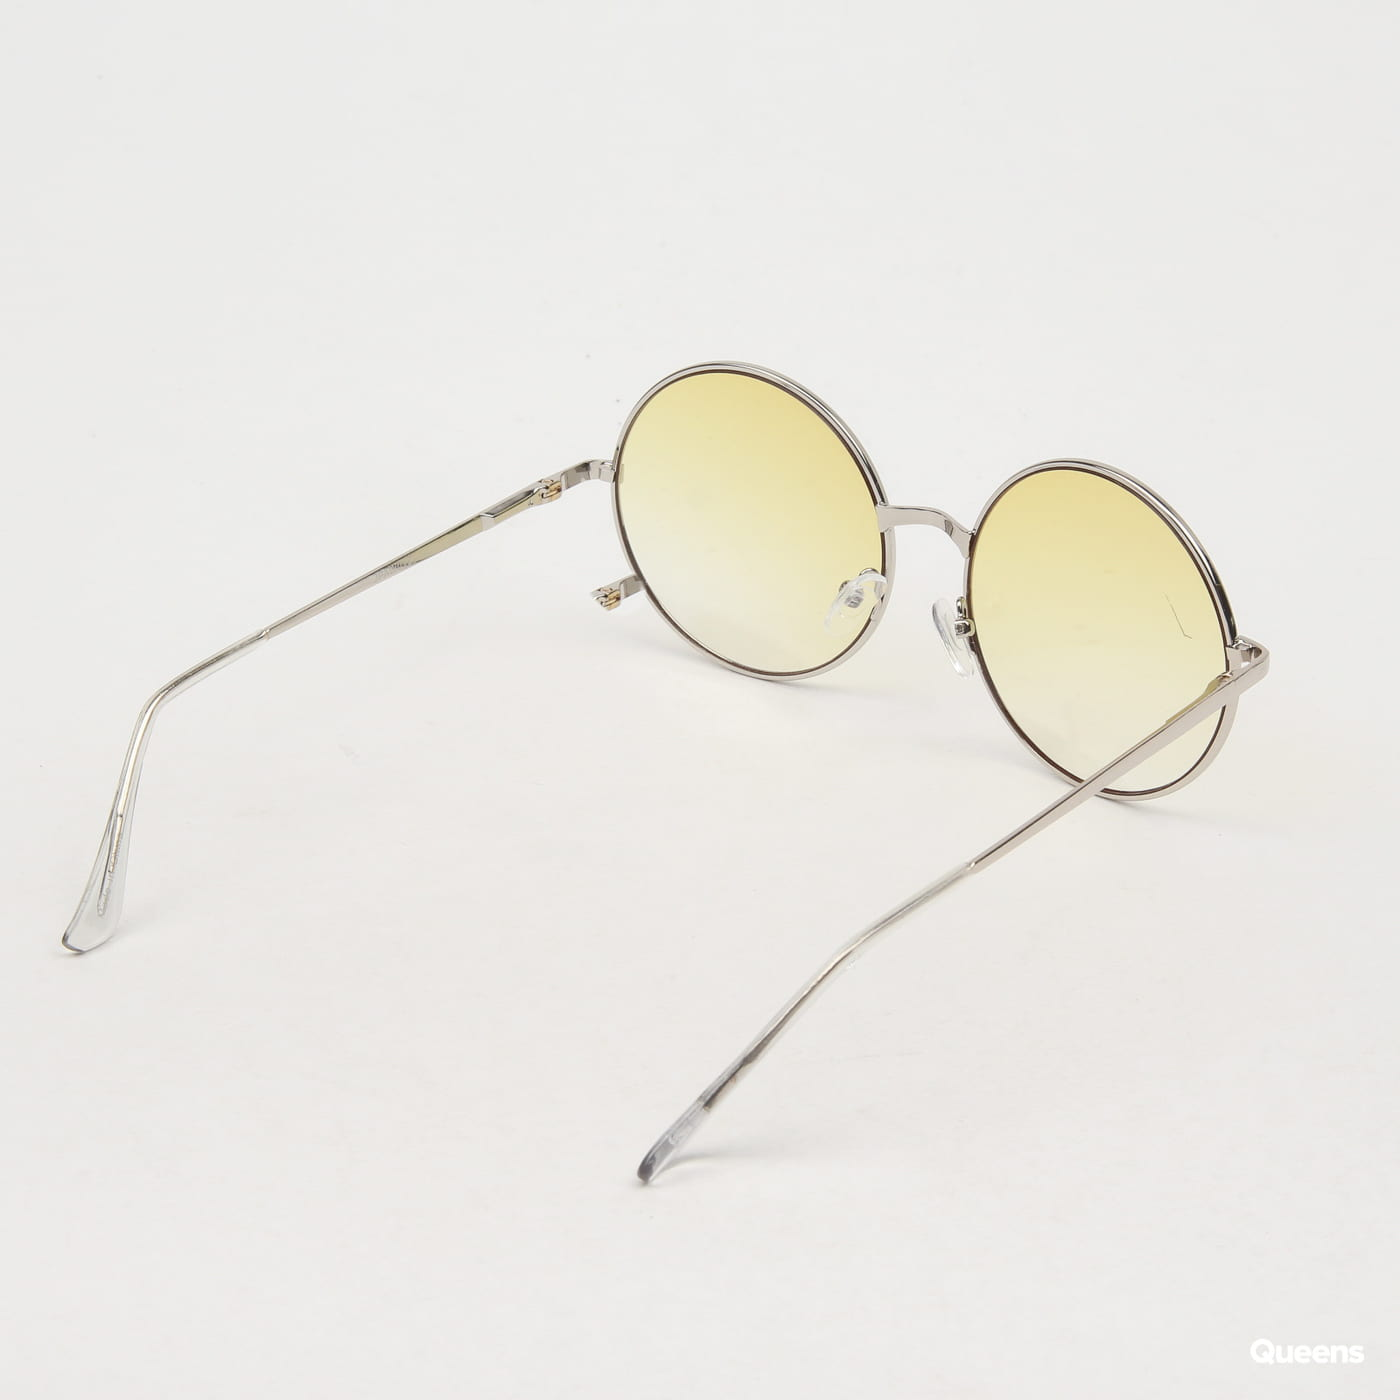 Jeepers Peepers Clear Yellow Round Sunglasses žlté / strieborné